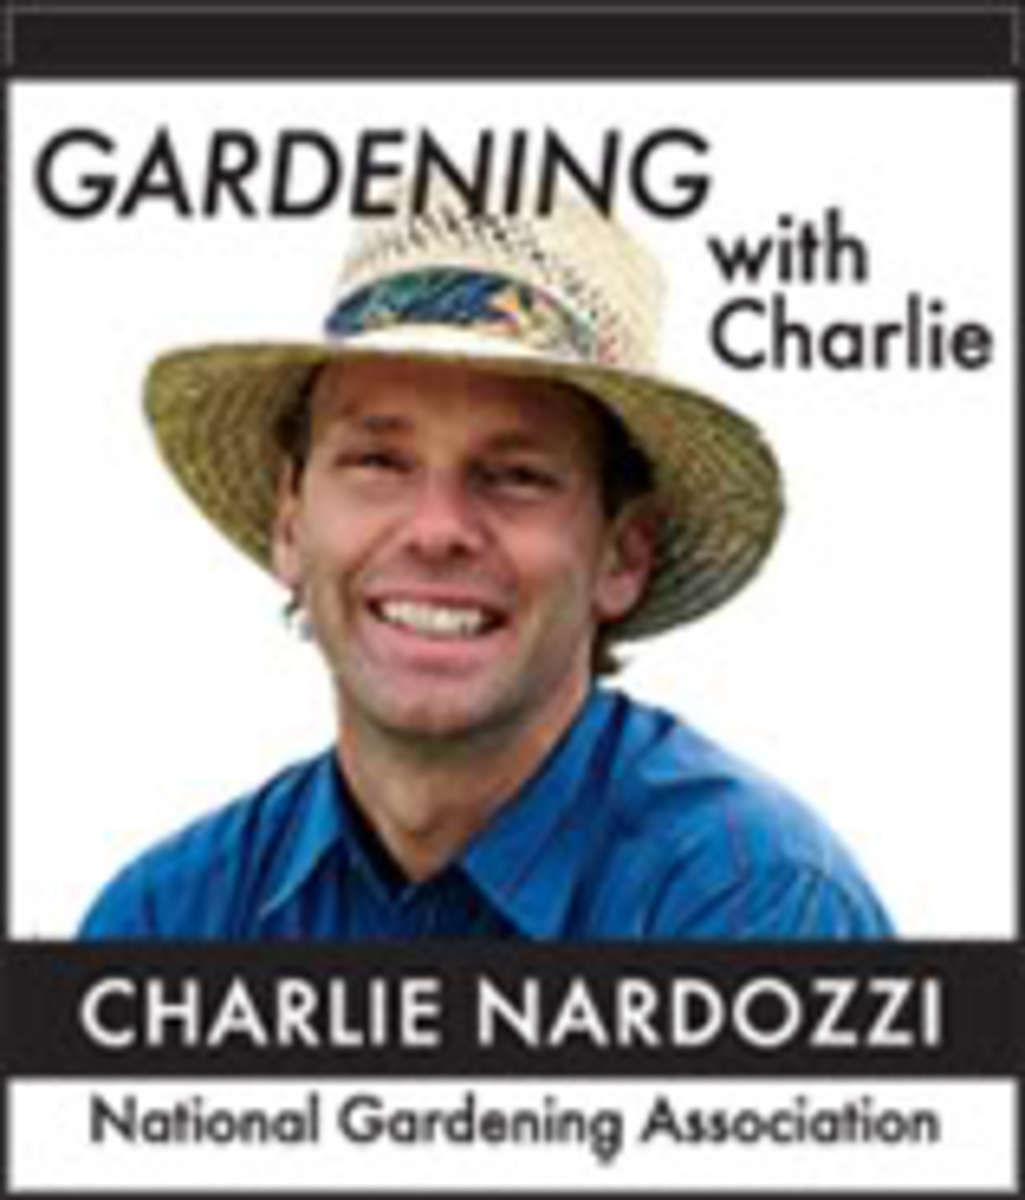 Gardening with Charlie